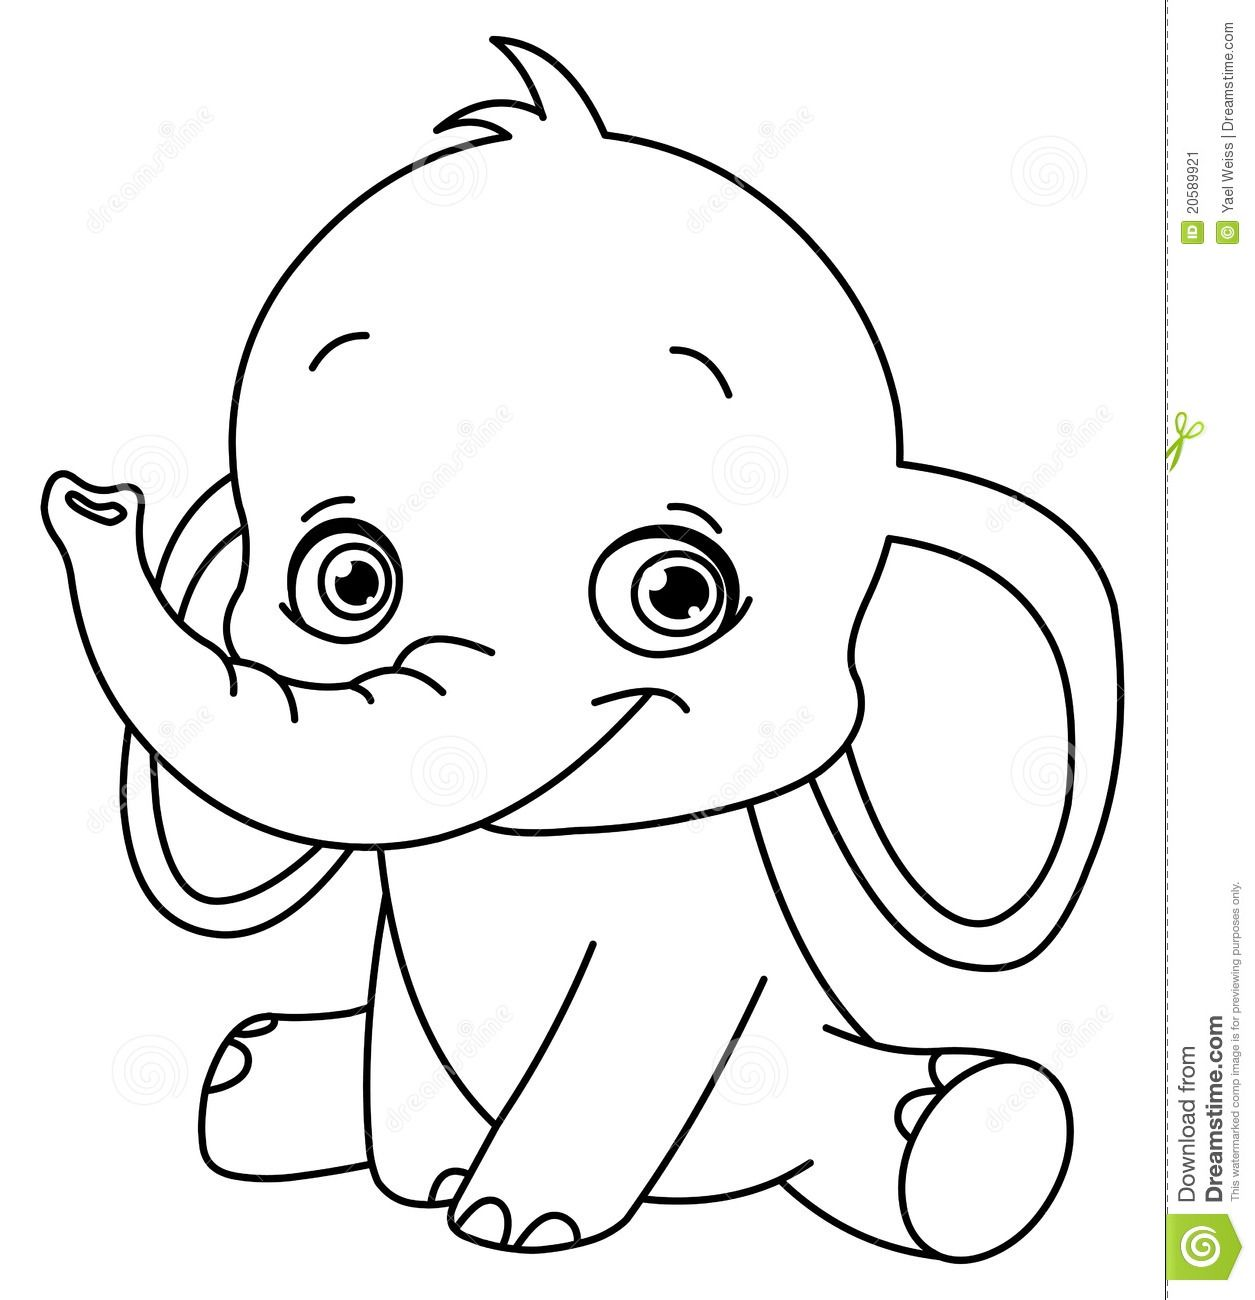 Disney Coloring Pages Can Teach You More About The Childhood And The Childhood Heroes Desc Elephant Coloring Page Elephant Colouring Pictures Elephant Outline